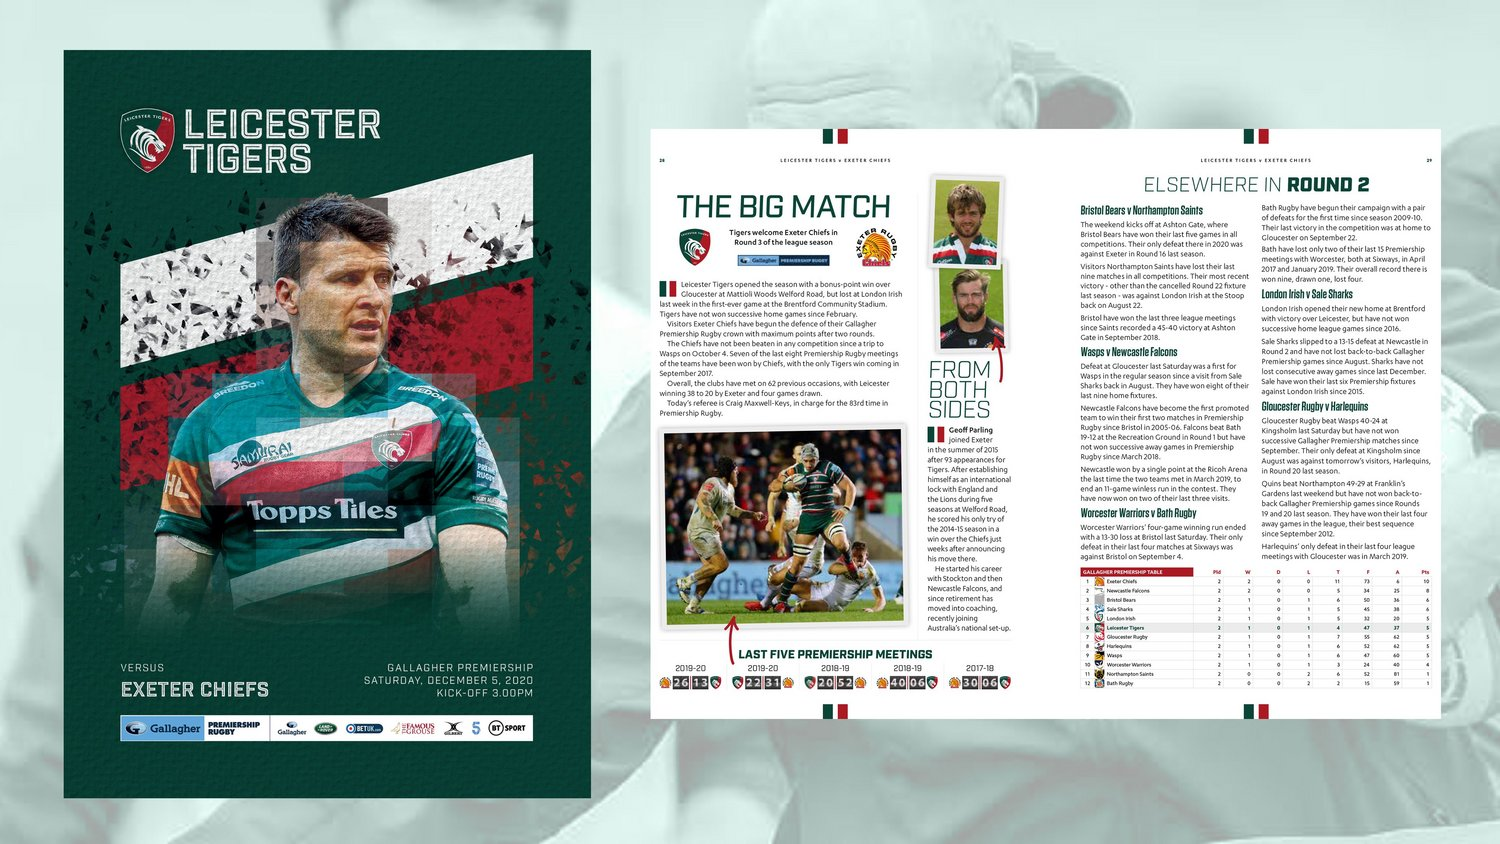 Leicester Tigers v Exeter Chiefs 2020-21 - Digital Matchday Programme